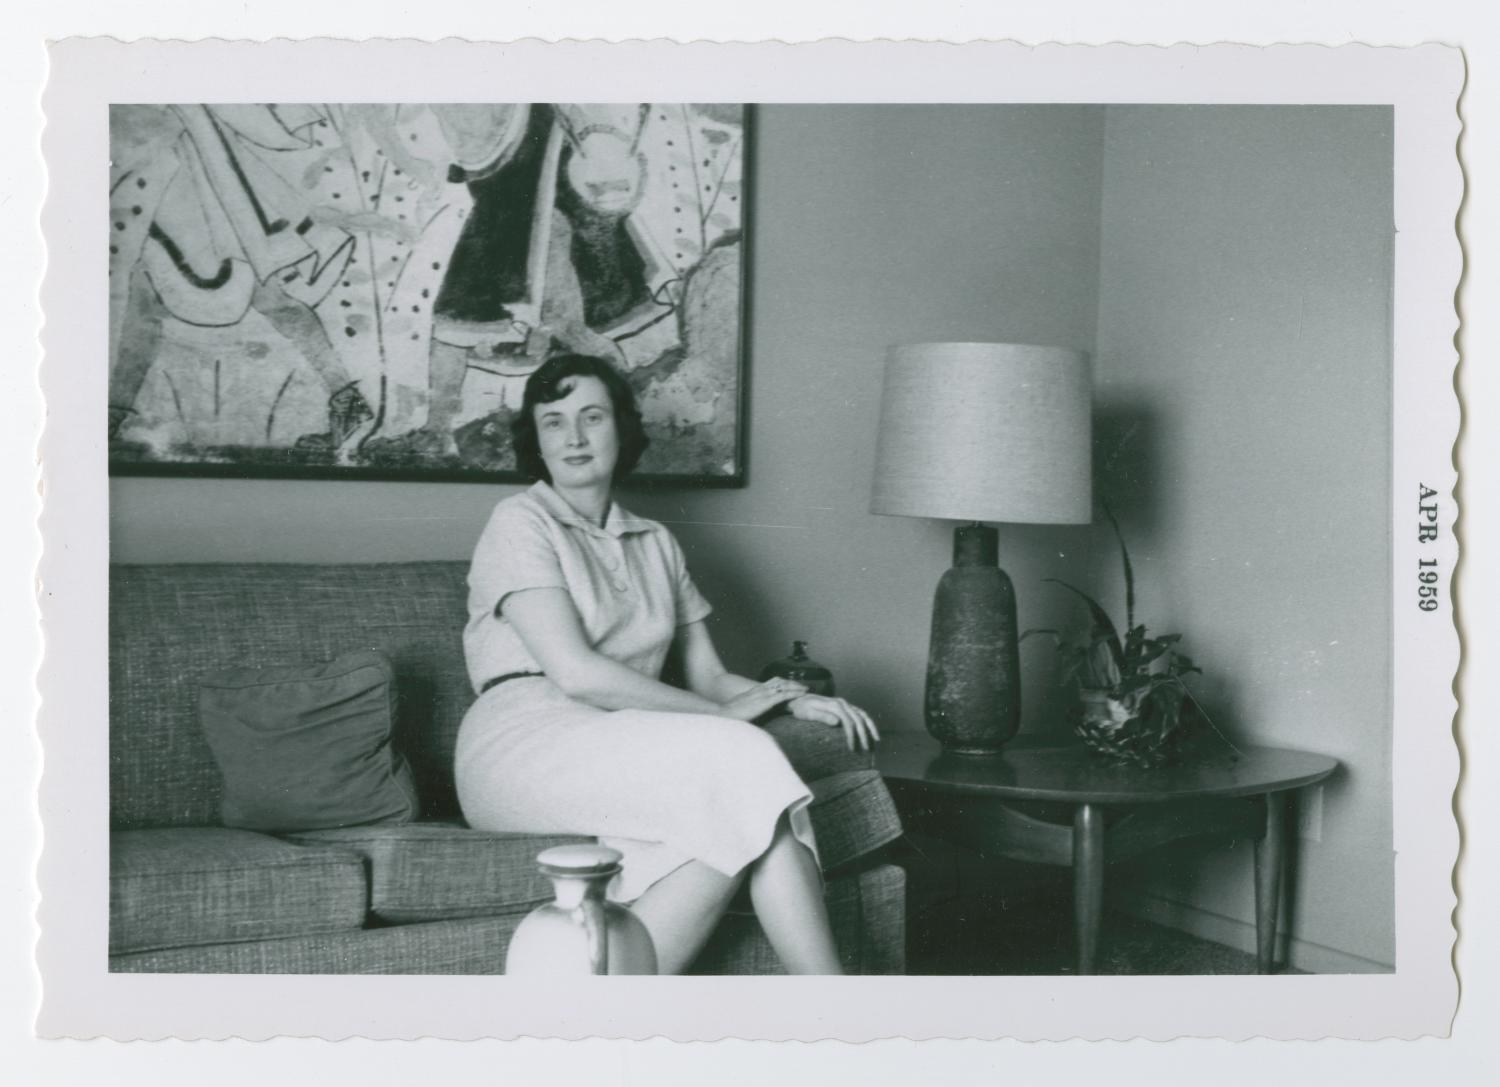 black and white photograph of woman sitting with legs crossed on a couch. She wears a white dress, and a table with lamp is beside her with a geometric painting hanging on the wall behind her.